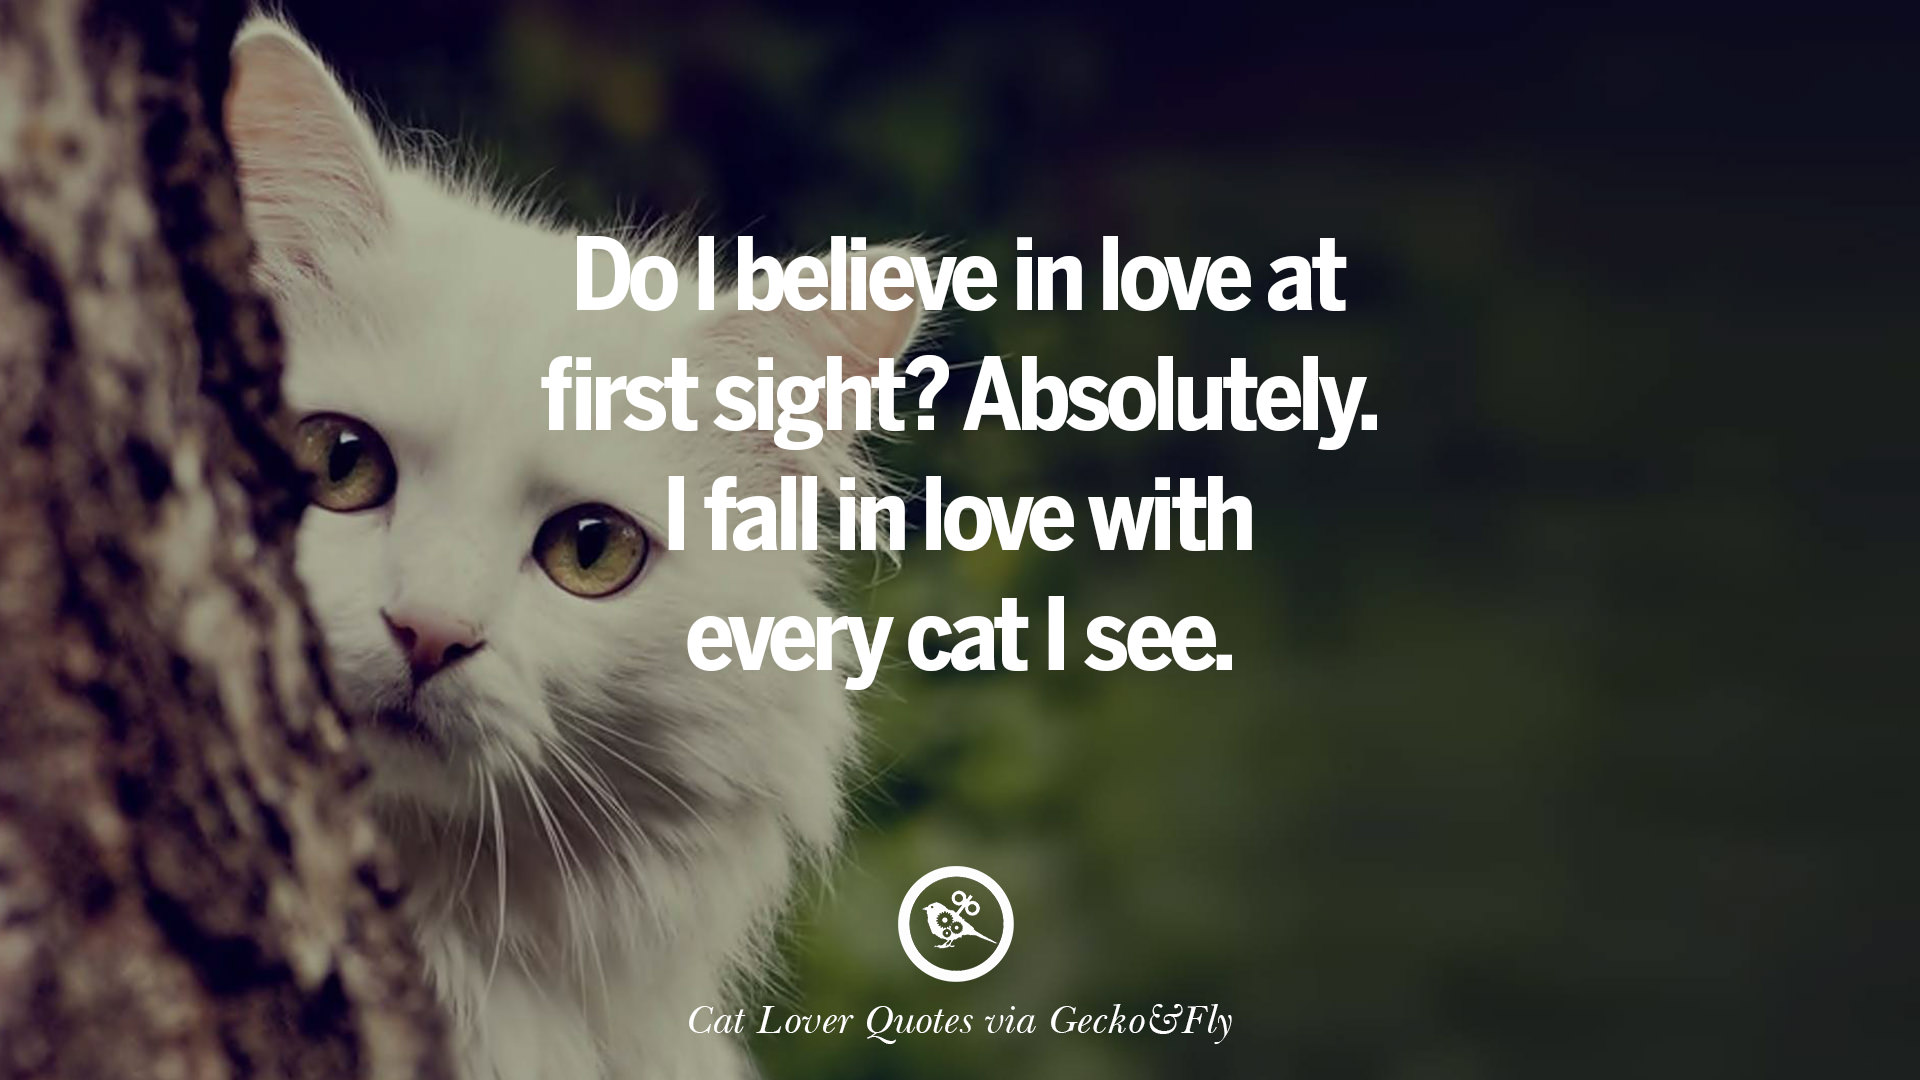 Quotes About Cats 25 Cute Cat Images With Quotes For Crazy Cat Ladies Gentlemen And